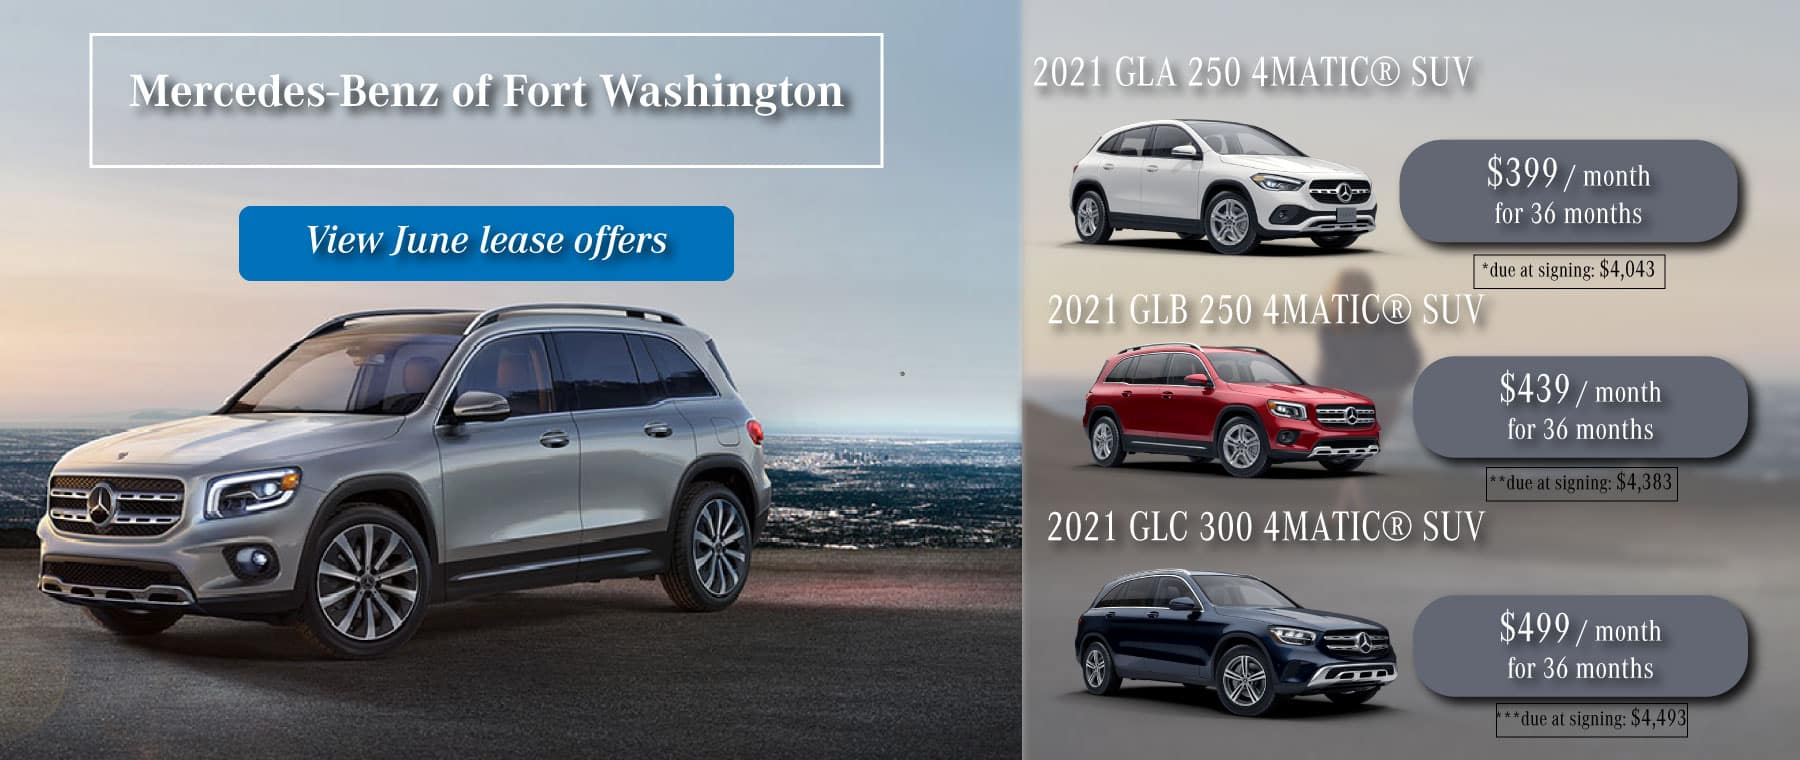 Mercedes-Benz of Fort washington new 2021 lease specials